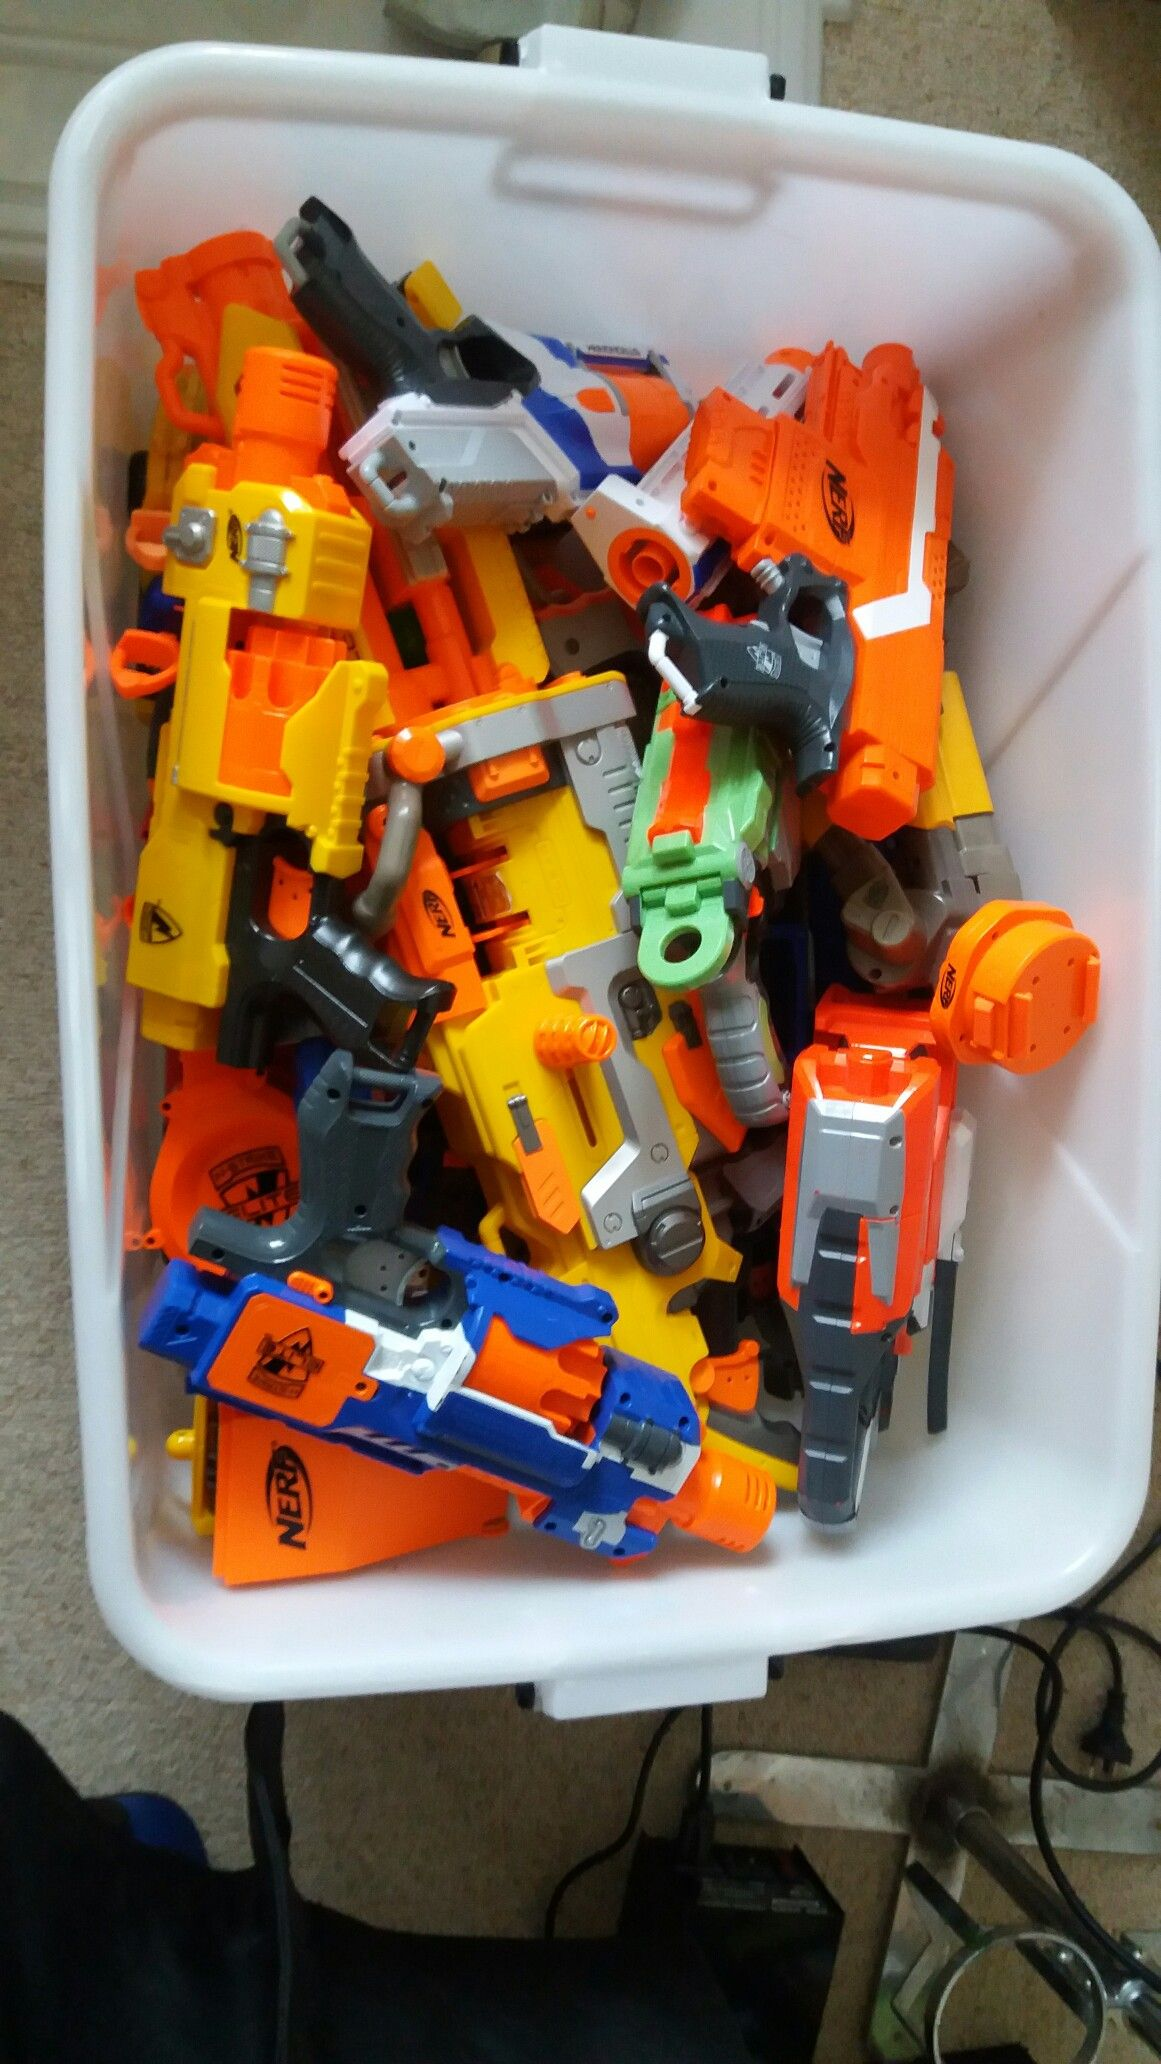 The mother load of nerf guns